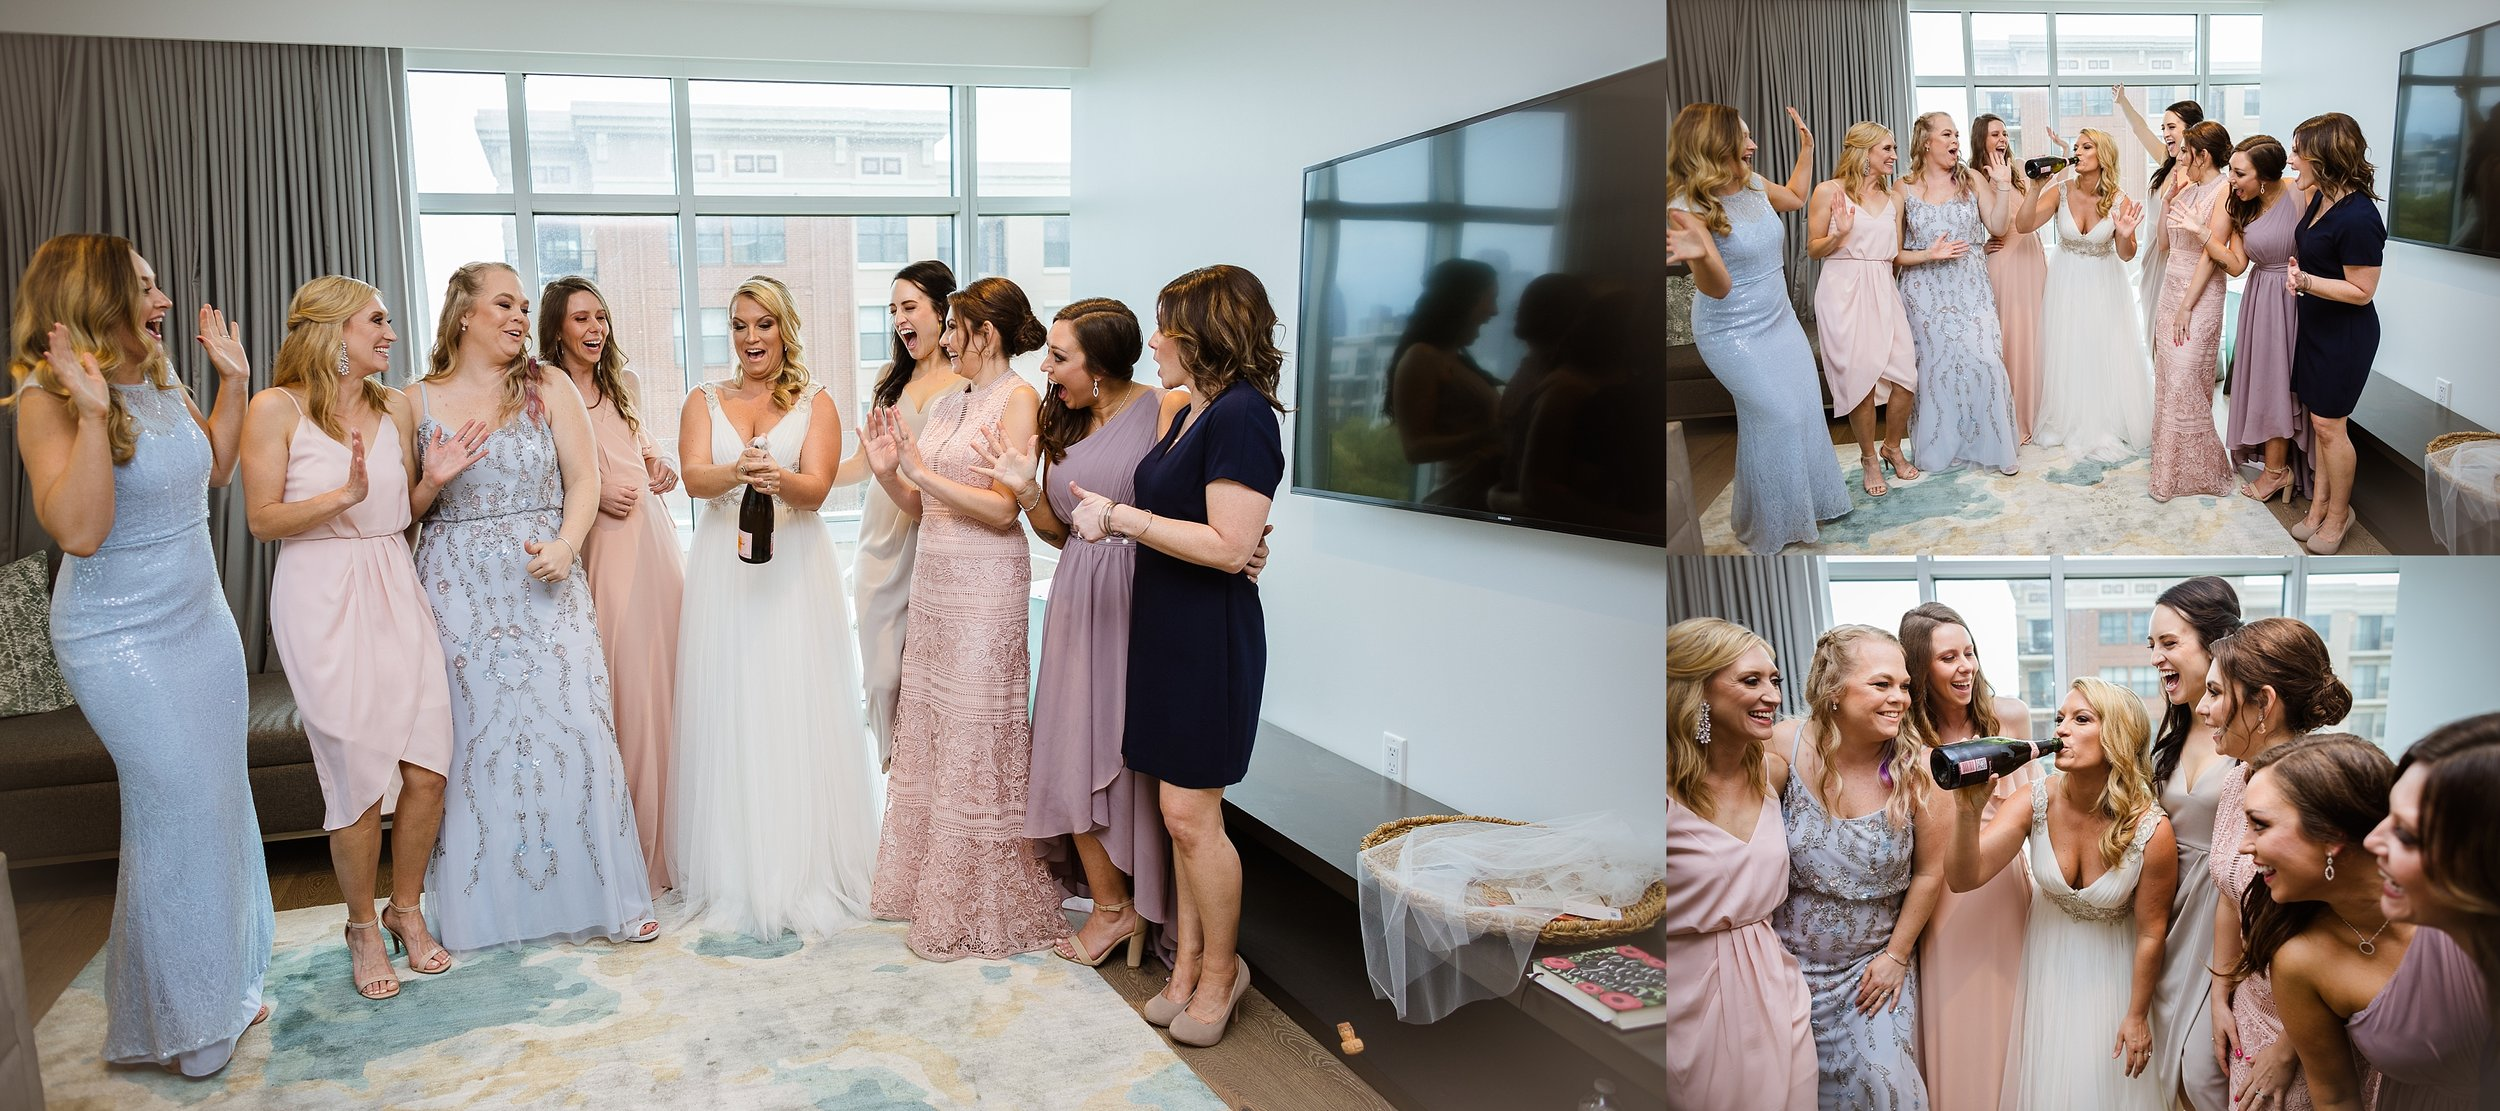 Love the different dresses and popping champagne!